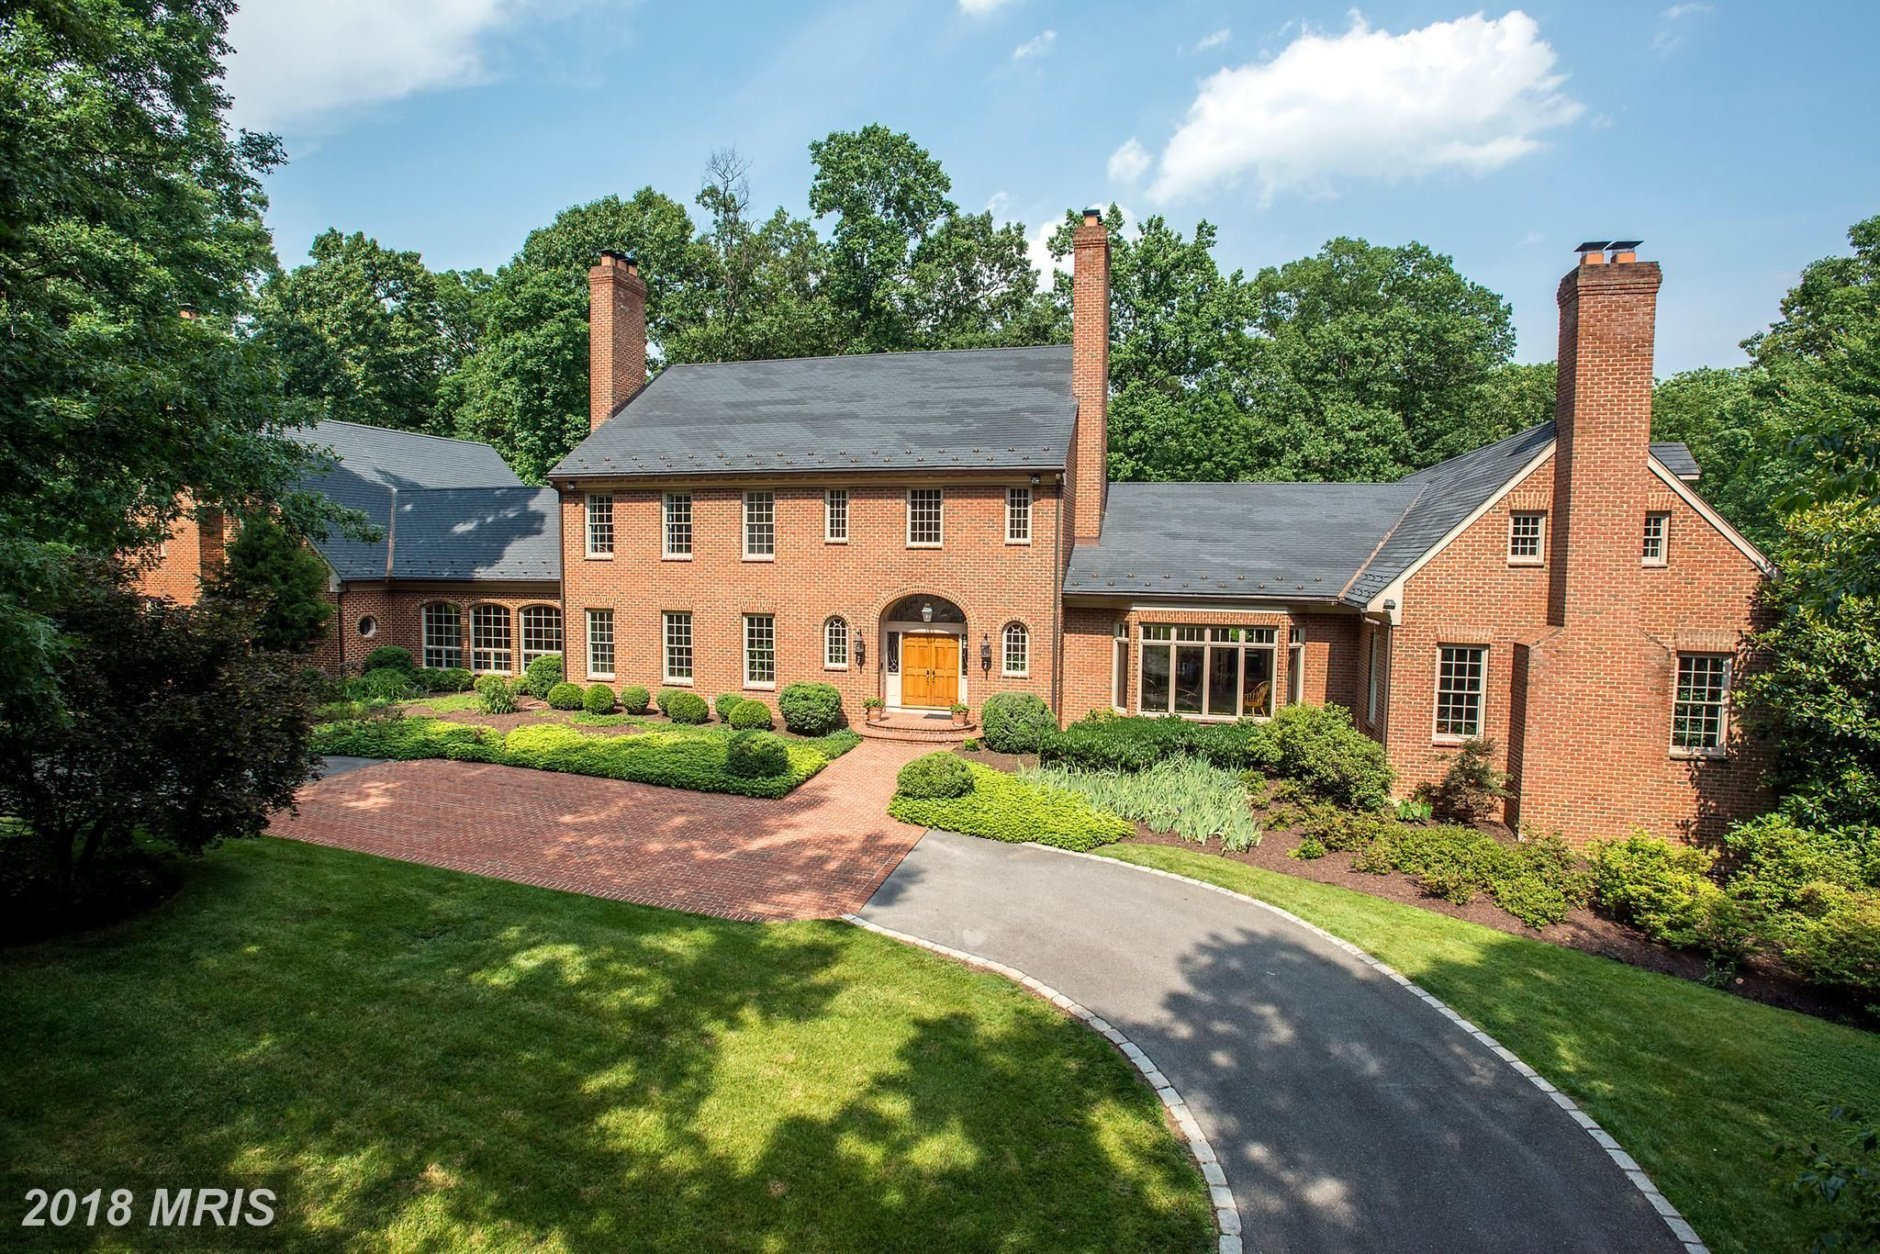 5. $3,000,000  19 Piney Glen Court Potomac, Maryland  This colonial home was built in 1988 and has six bedrooms and seven bathrooms.  (Courtesy Bright MLS)